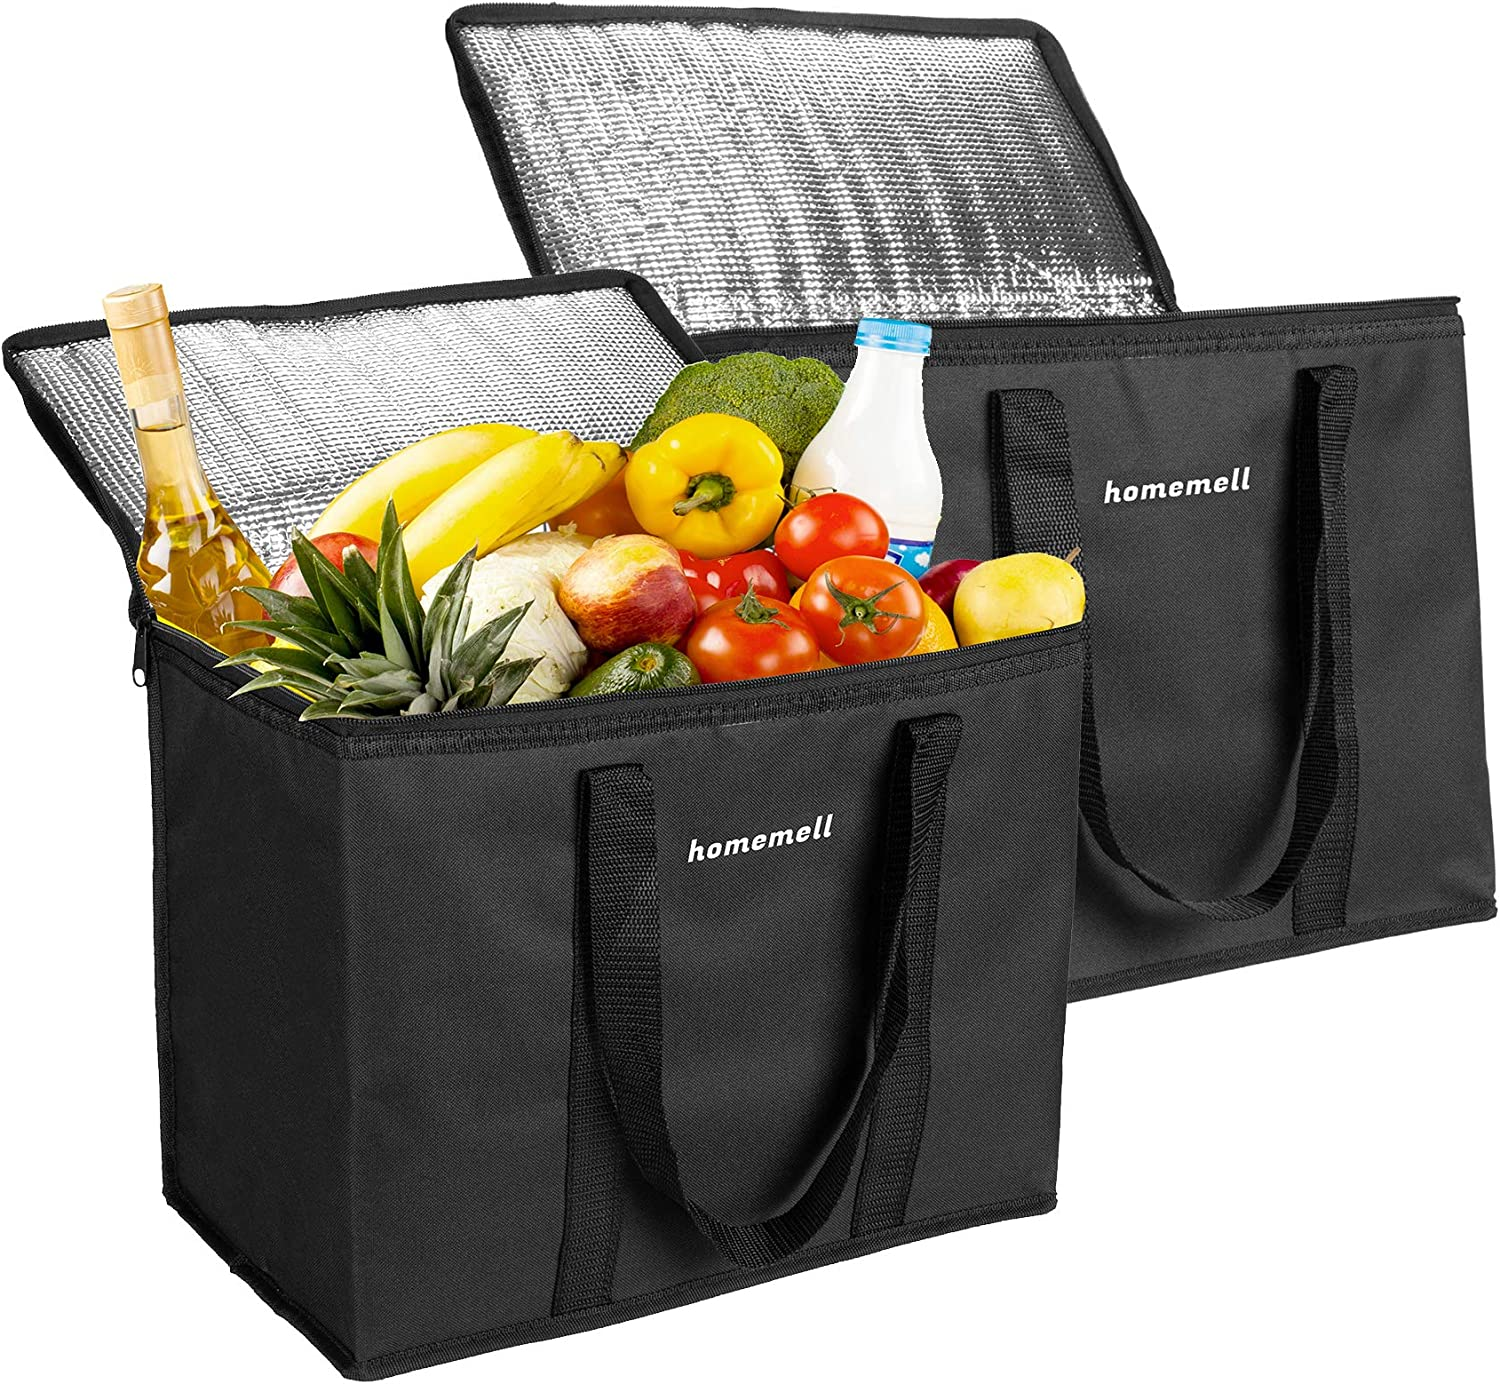 Homemell Insulated Shopping Bags for Groceries Food Large Cooler Bags Collapsible Soft Zippered Hot Food Delivery Bag Upgraded Fabric with Insulated Technology Reusable Family Grocery Food Shopping